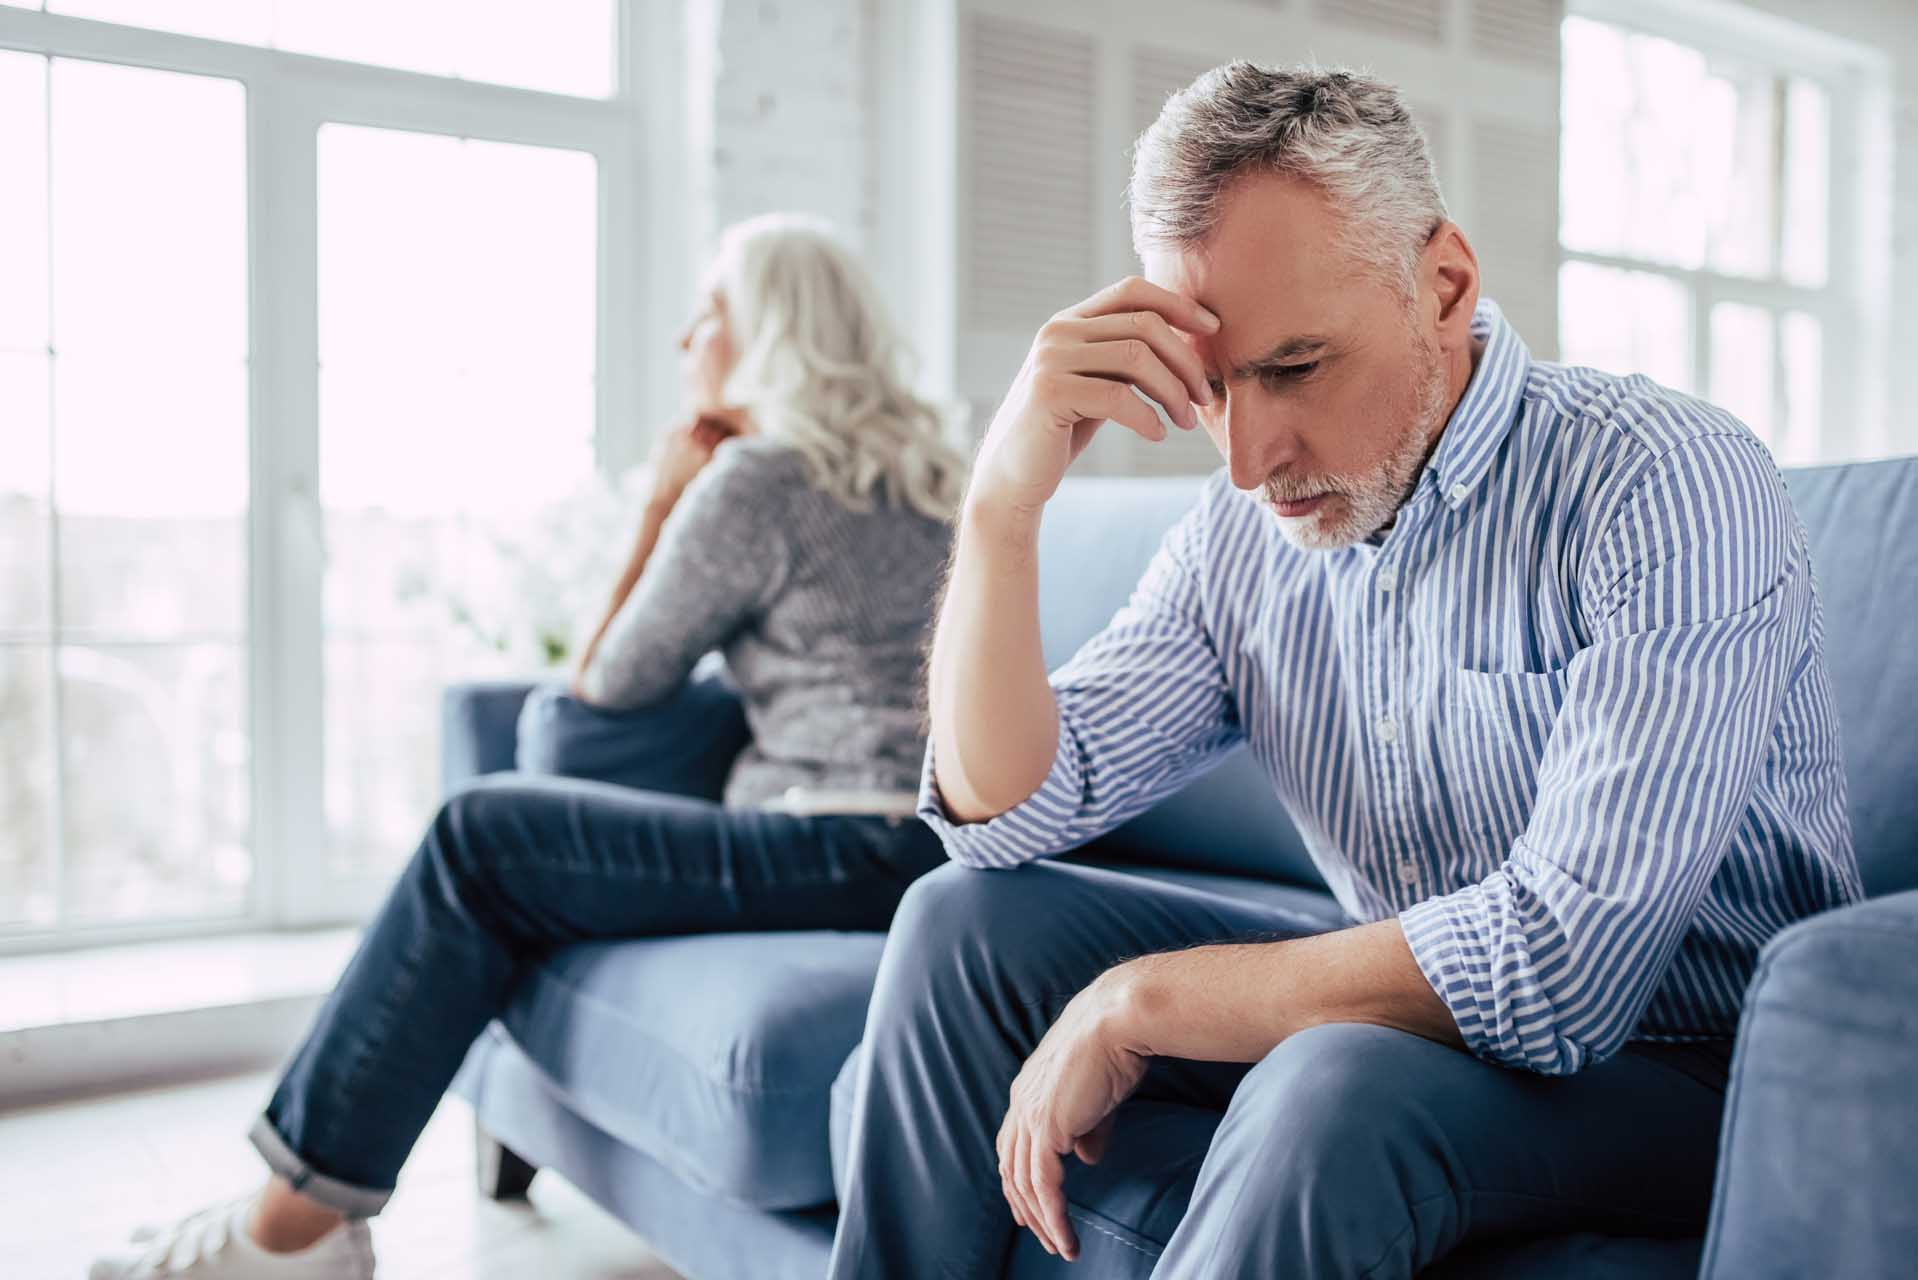 Tips on preparing yourself for divorce